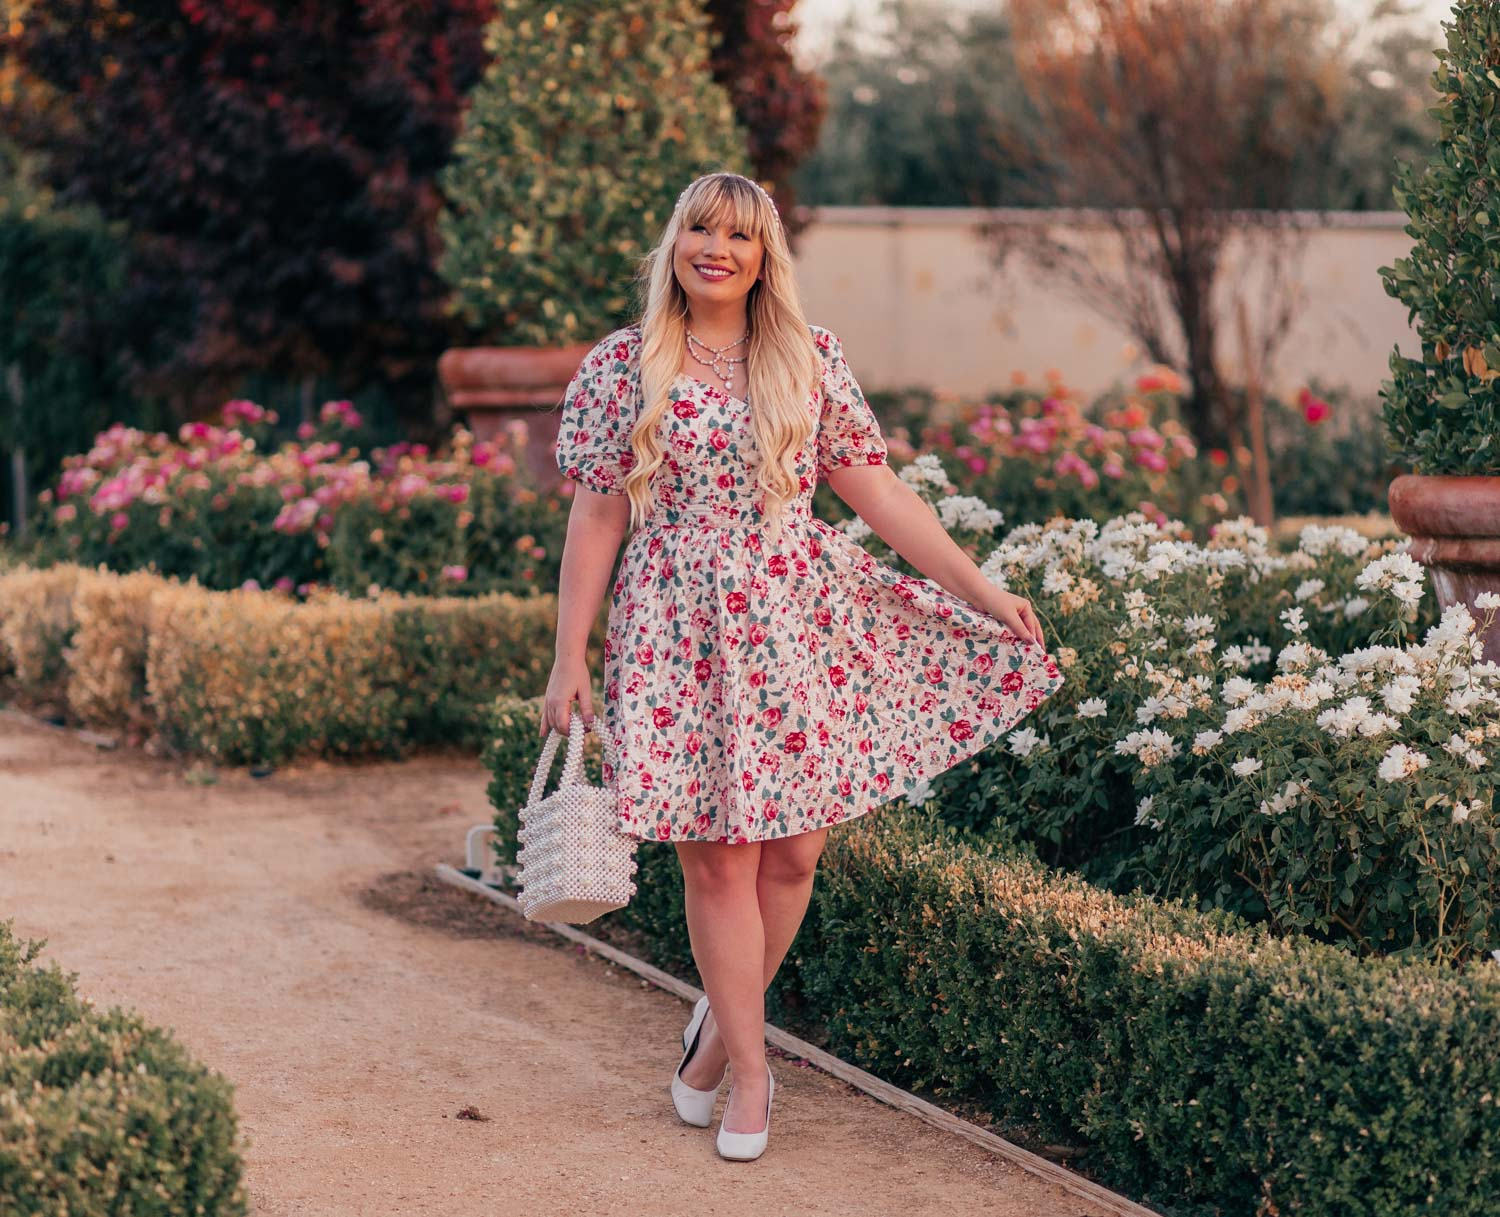 Feminine Fashion Blogger Elizabeth Hugen of Lizzie in Lace shares her July 2021 Month in Review along with a red rose print dress from Chicwish